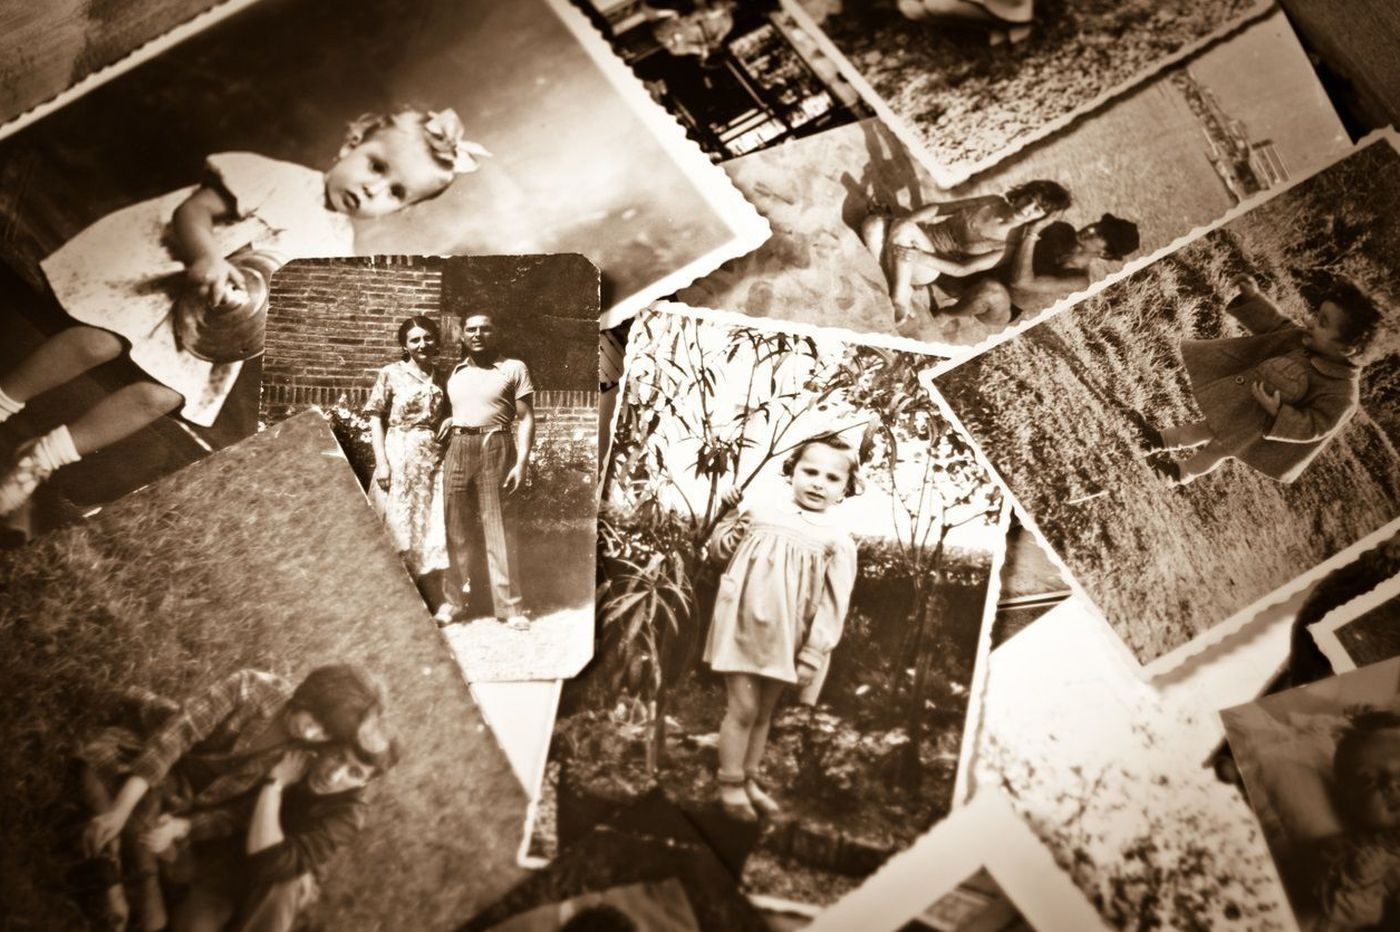 My mother doesn't have many memories left, and most of them are wrong. What's going on?